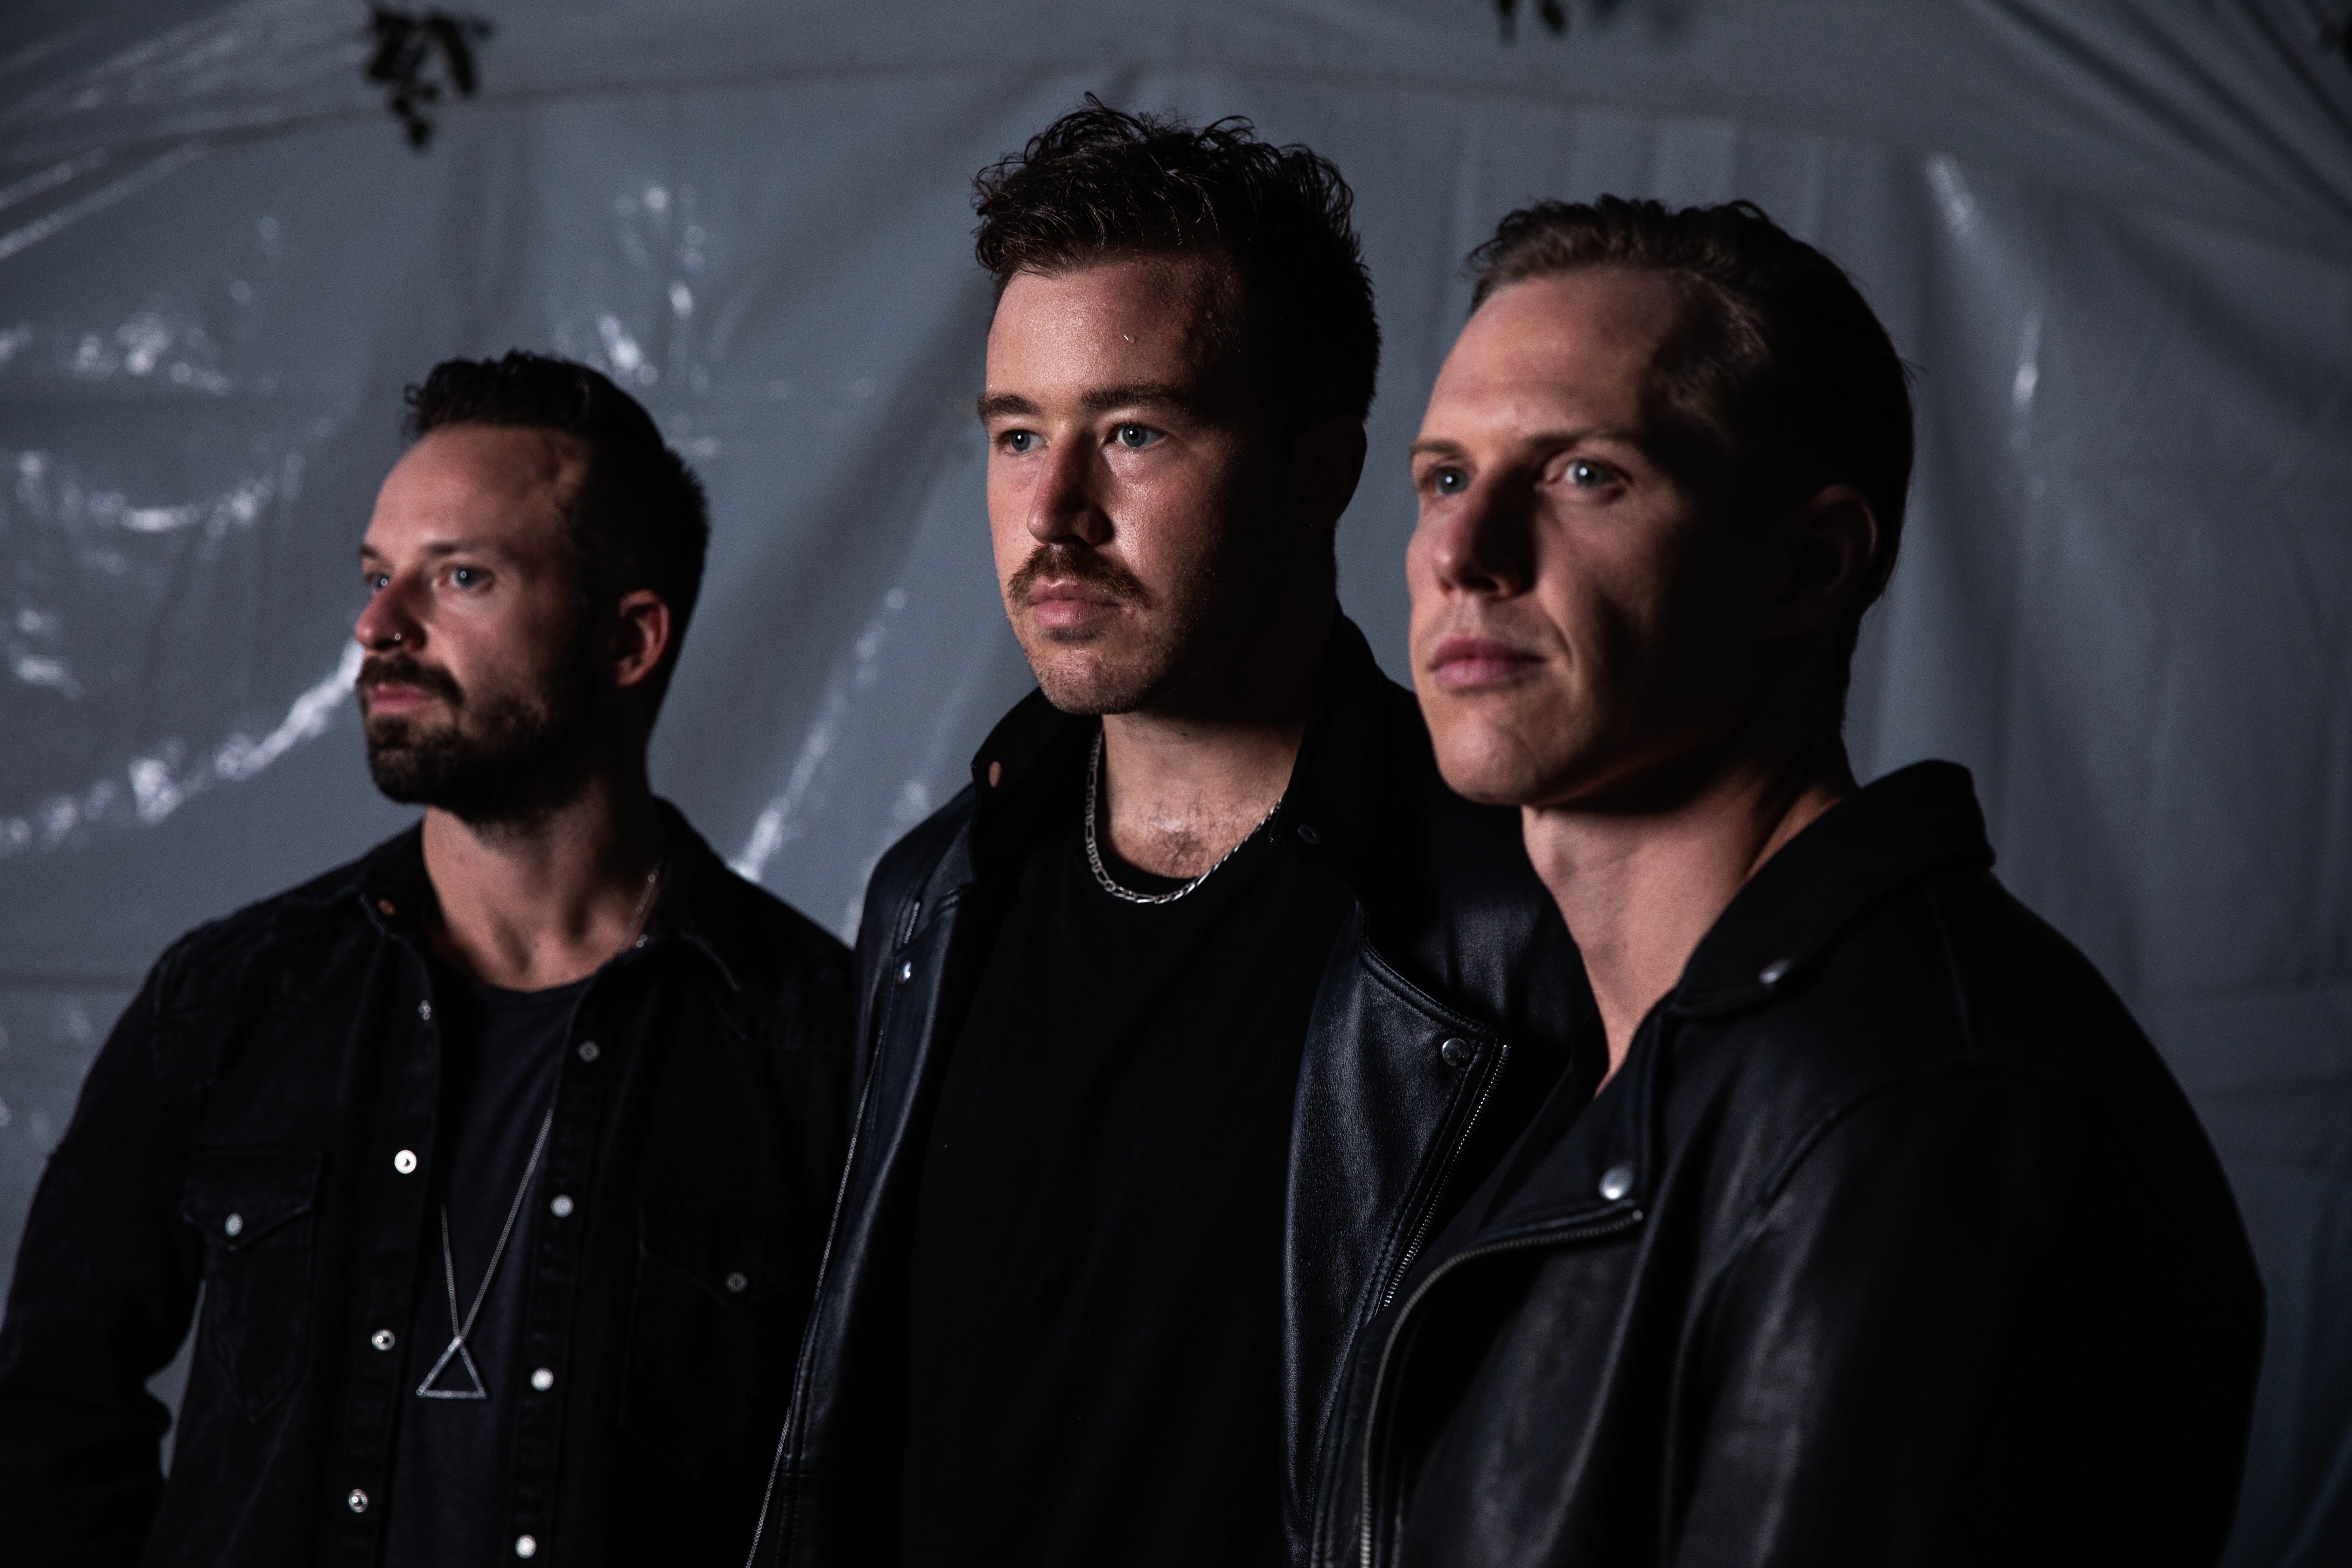 Do you have a heart and a glowstick? Put some ACL Fest respect on Rüfüs du Sol s name